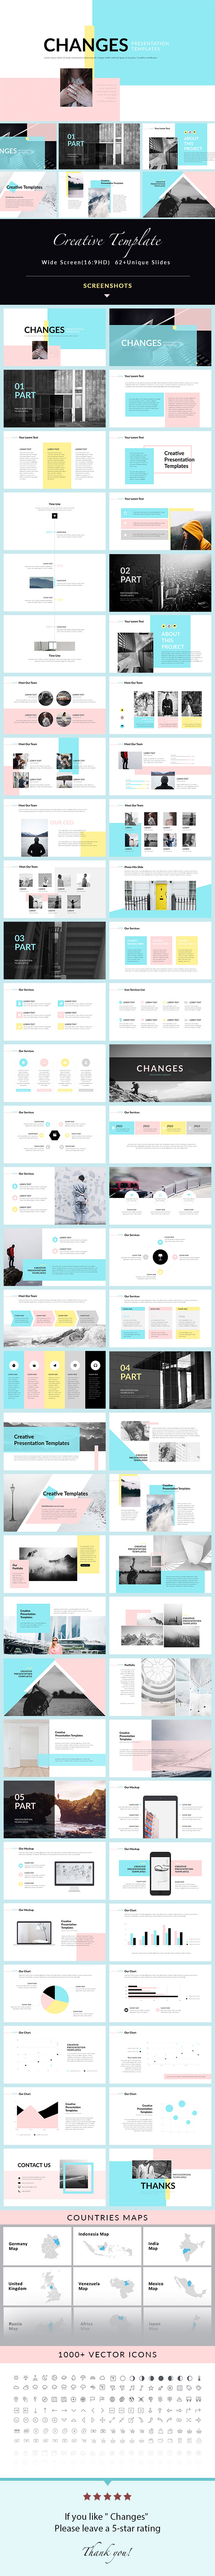 GraphicRiver Changes Keynote Presentation Template 20955592